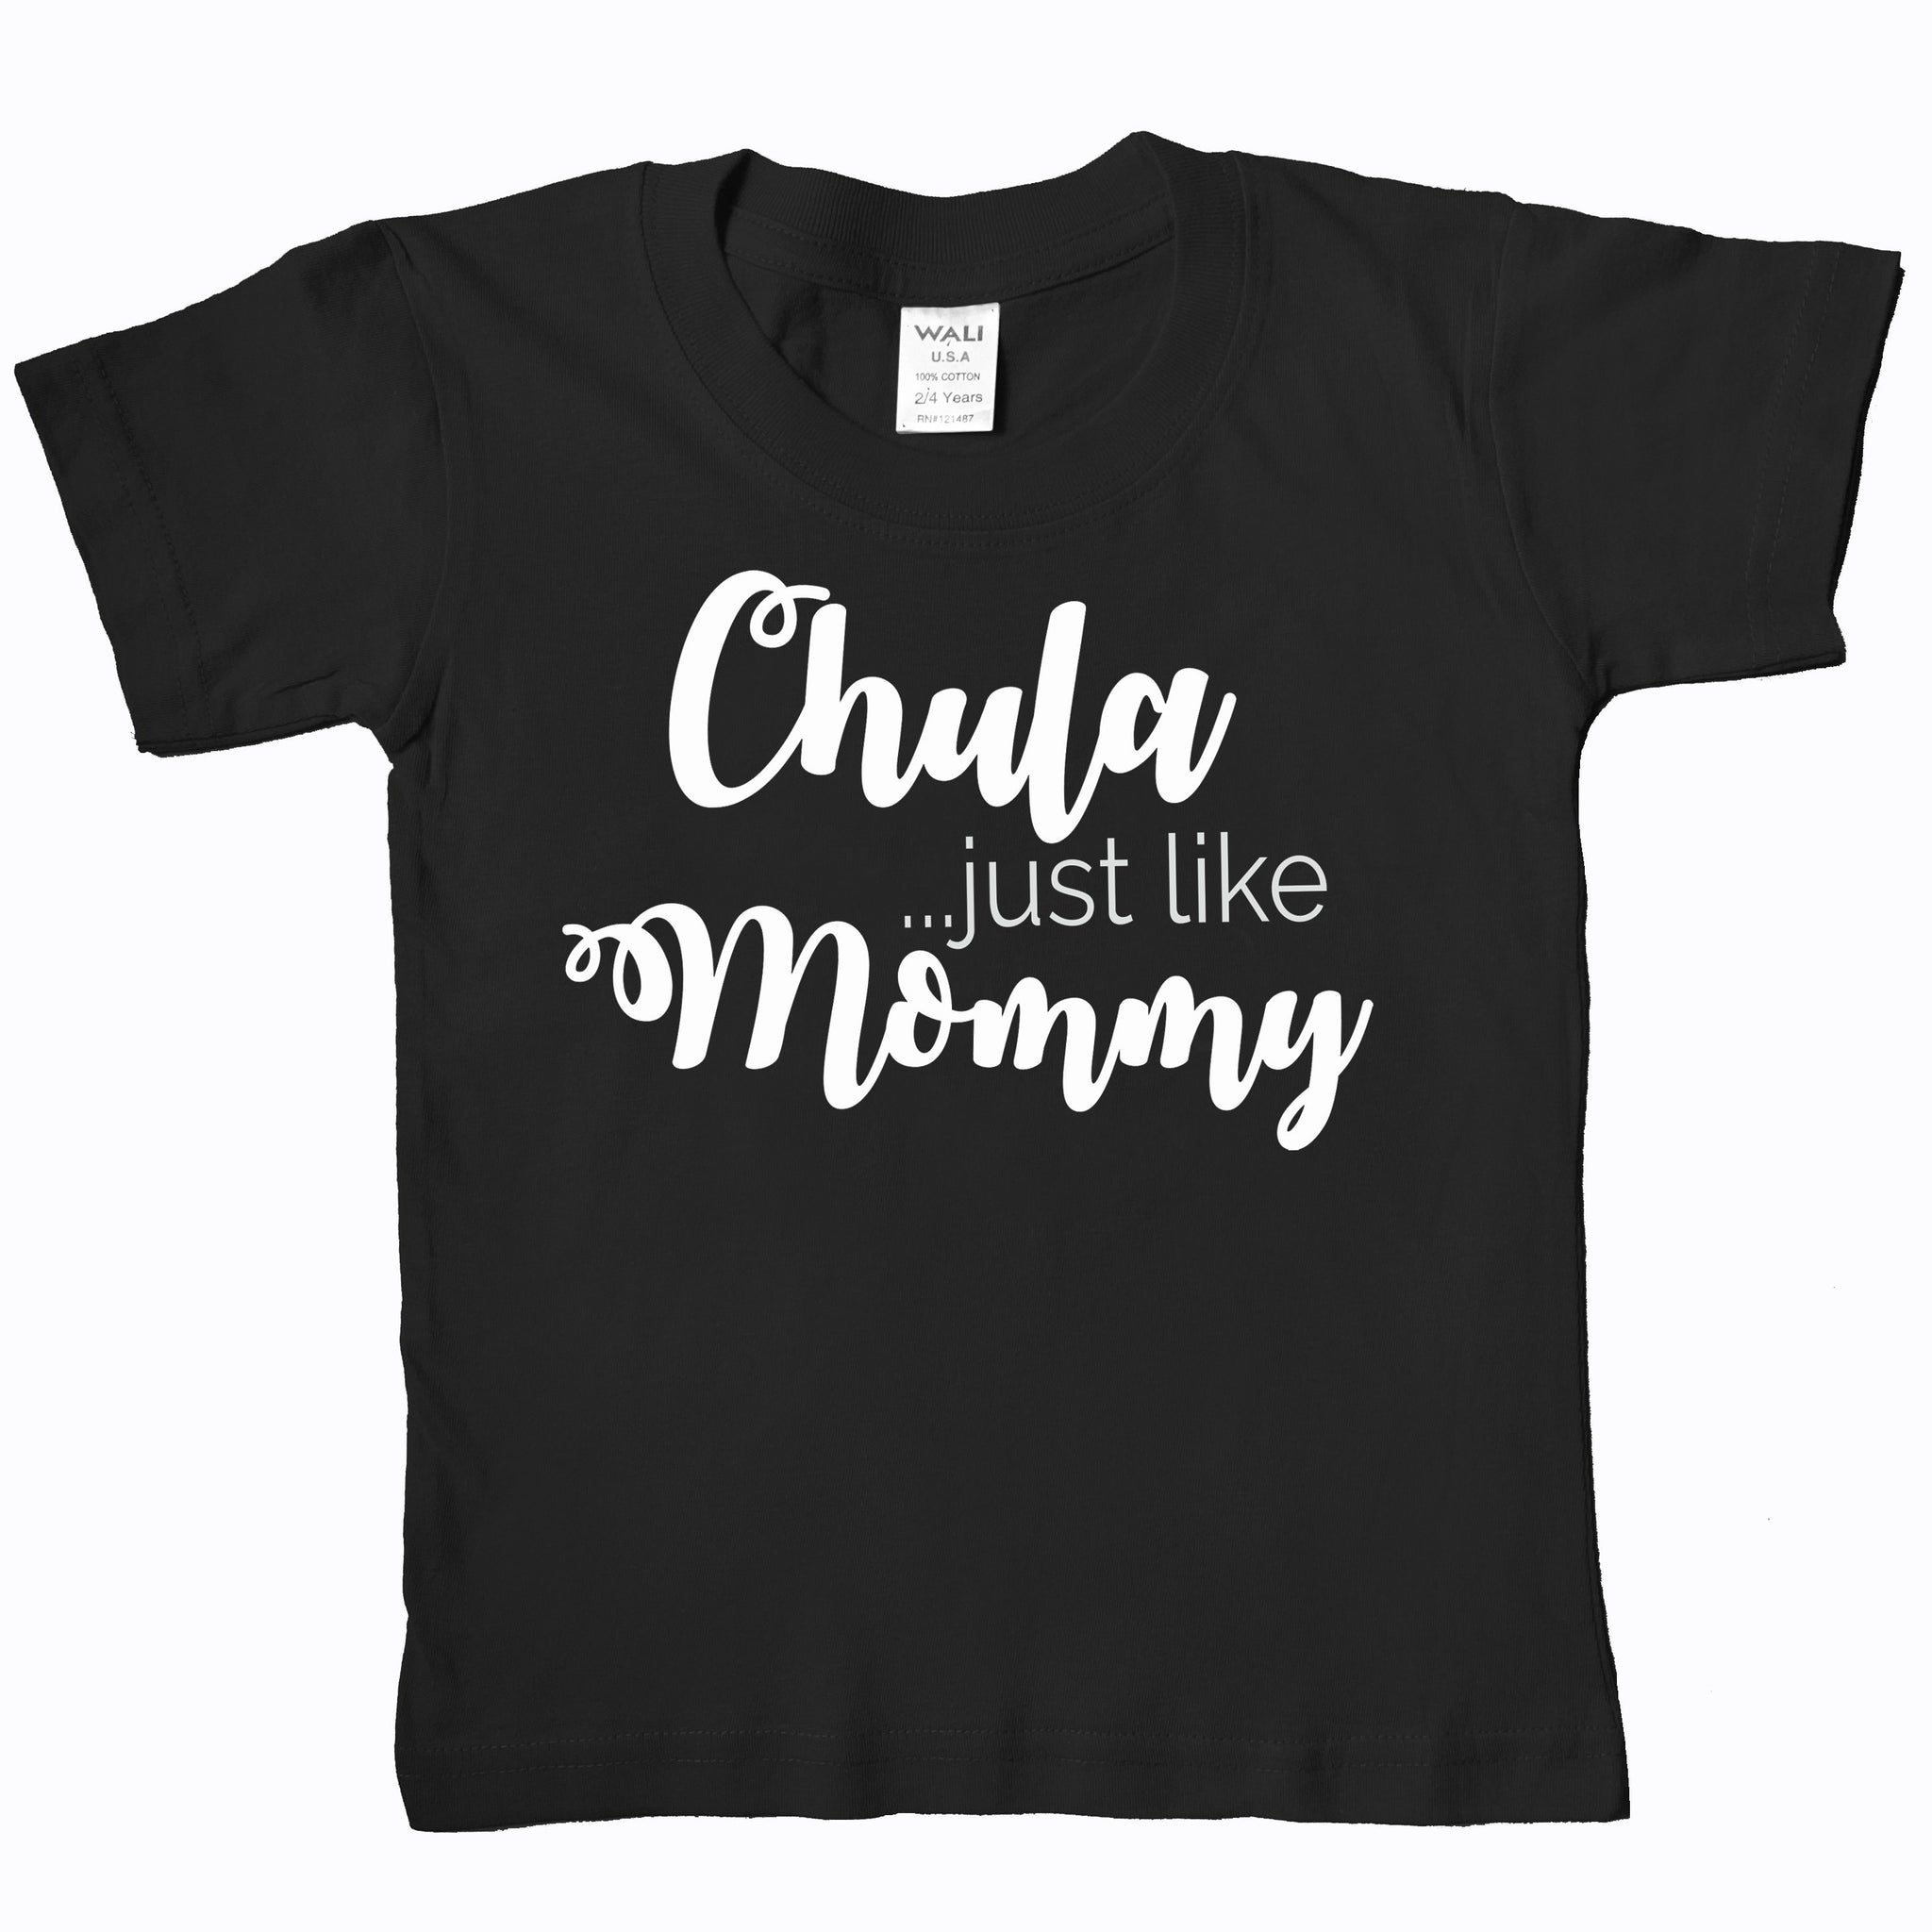 Baby Sister My Way Many Colors Youth kids toddler size t-shirt 2-4 To 14-16